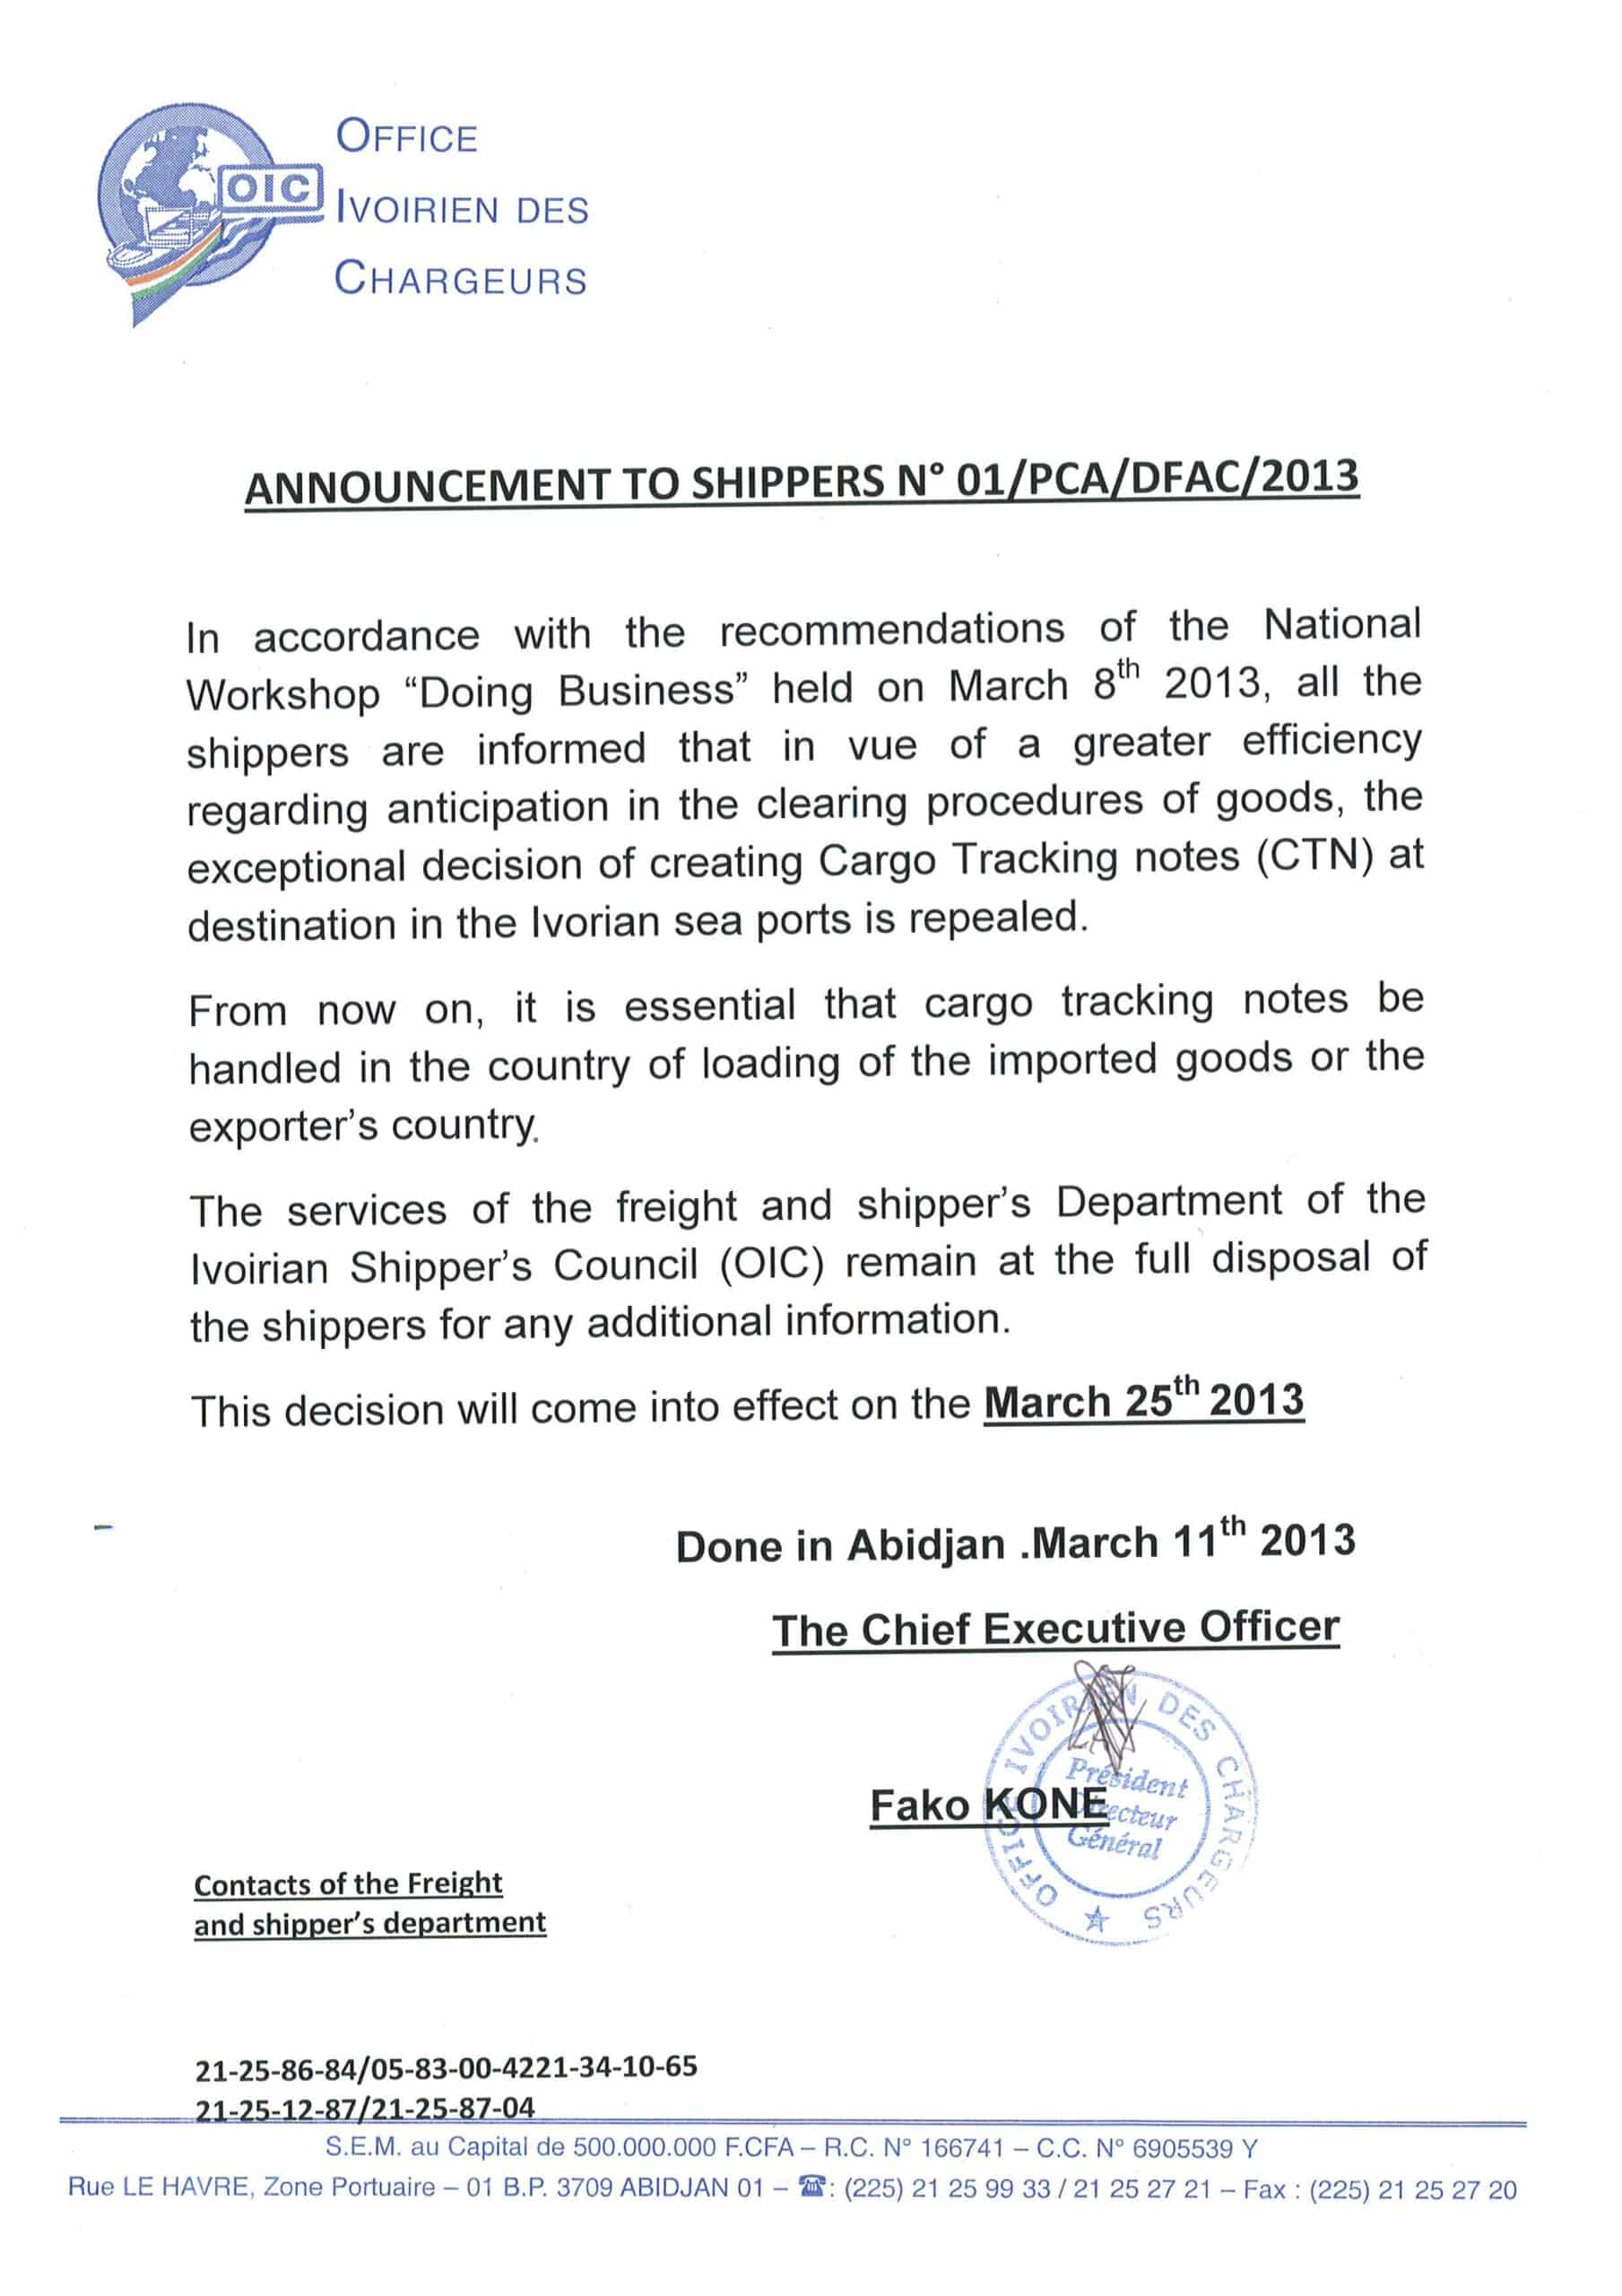 A notice about the BSC document from the Ivory Coast